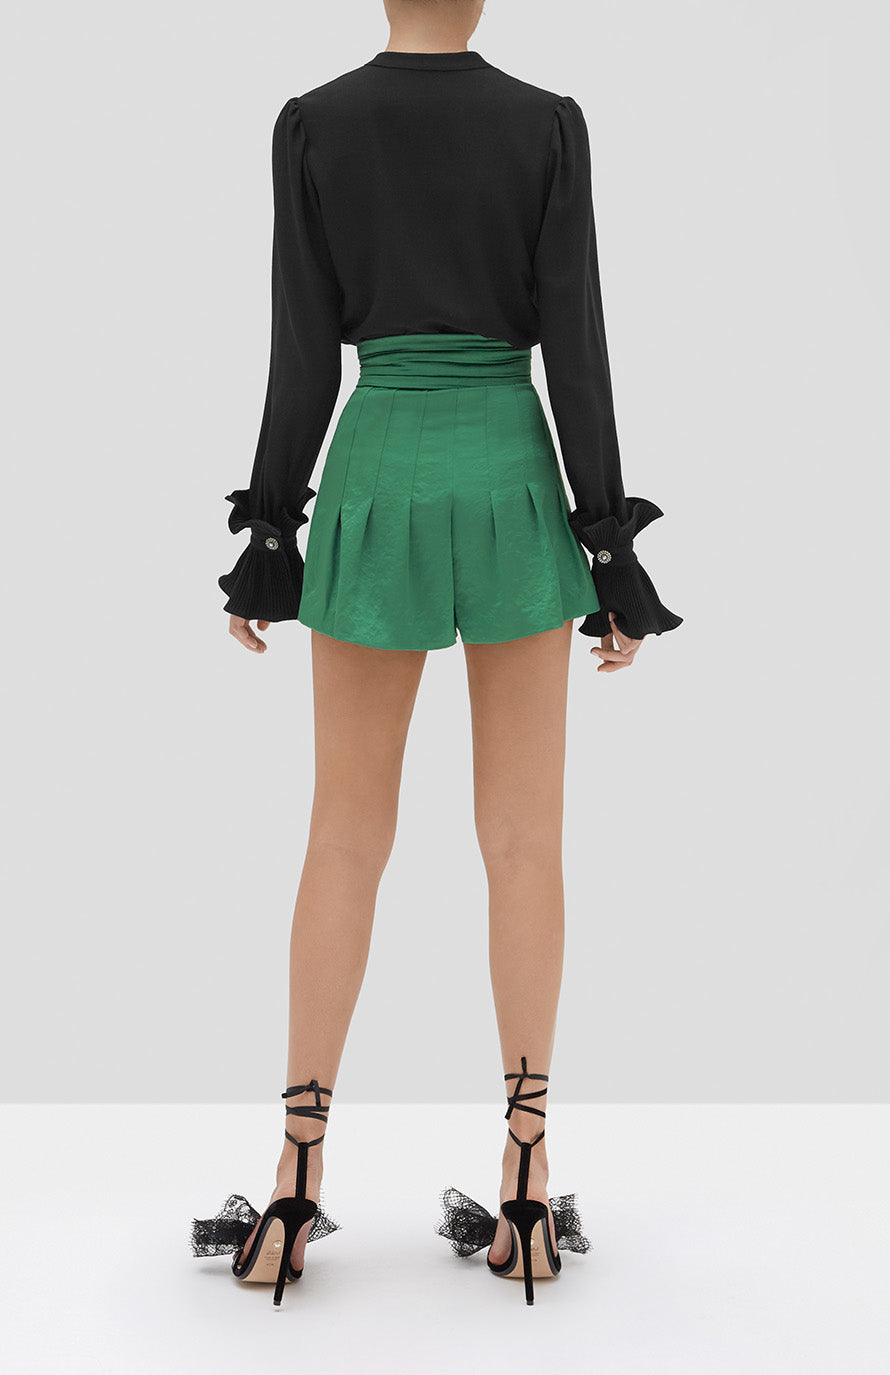 Alexis Meera Top in Black and Lucca Shorts in Emerald Green from our Holiday 2019 Collection. - Rear View